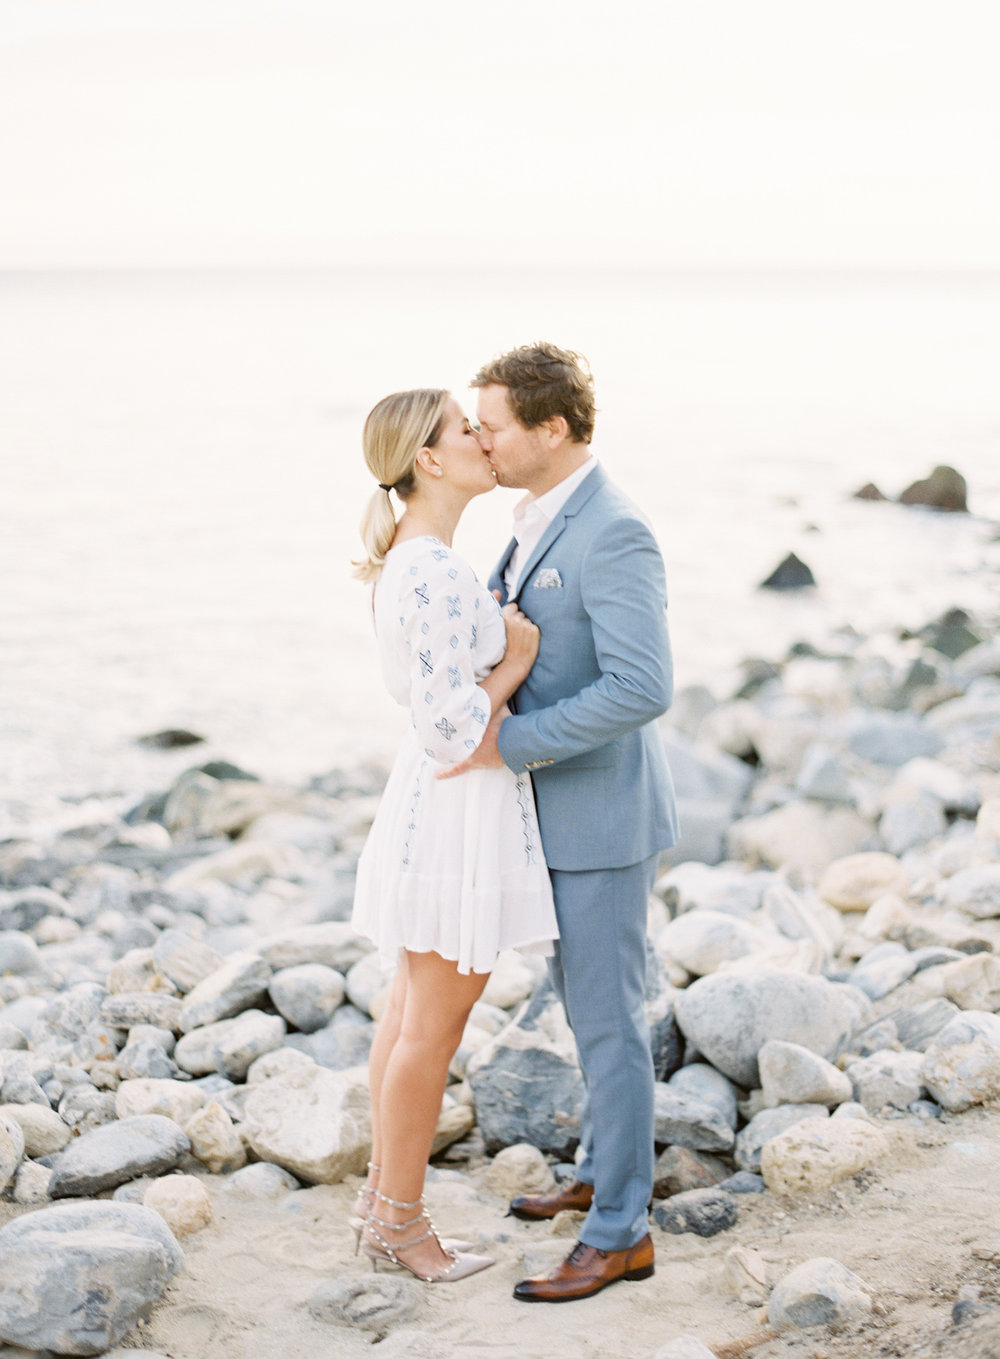 Terranea-engagement-session-los-angeles-13.jpg